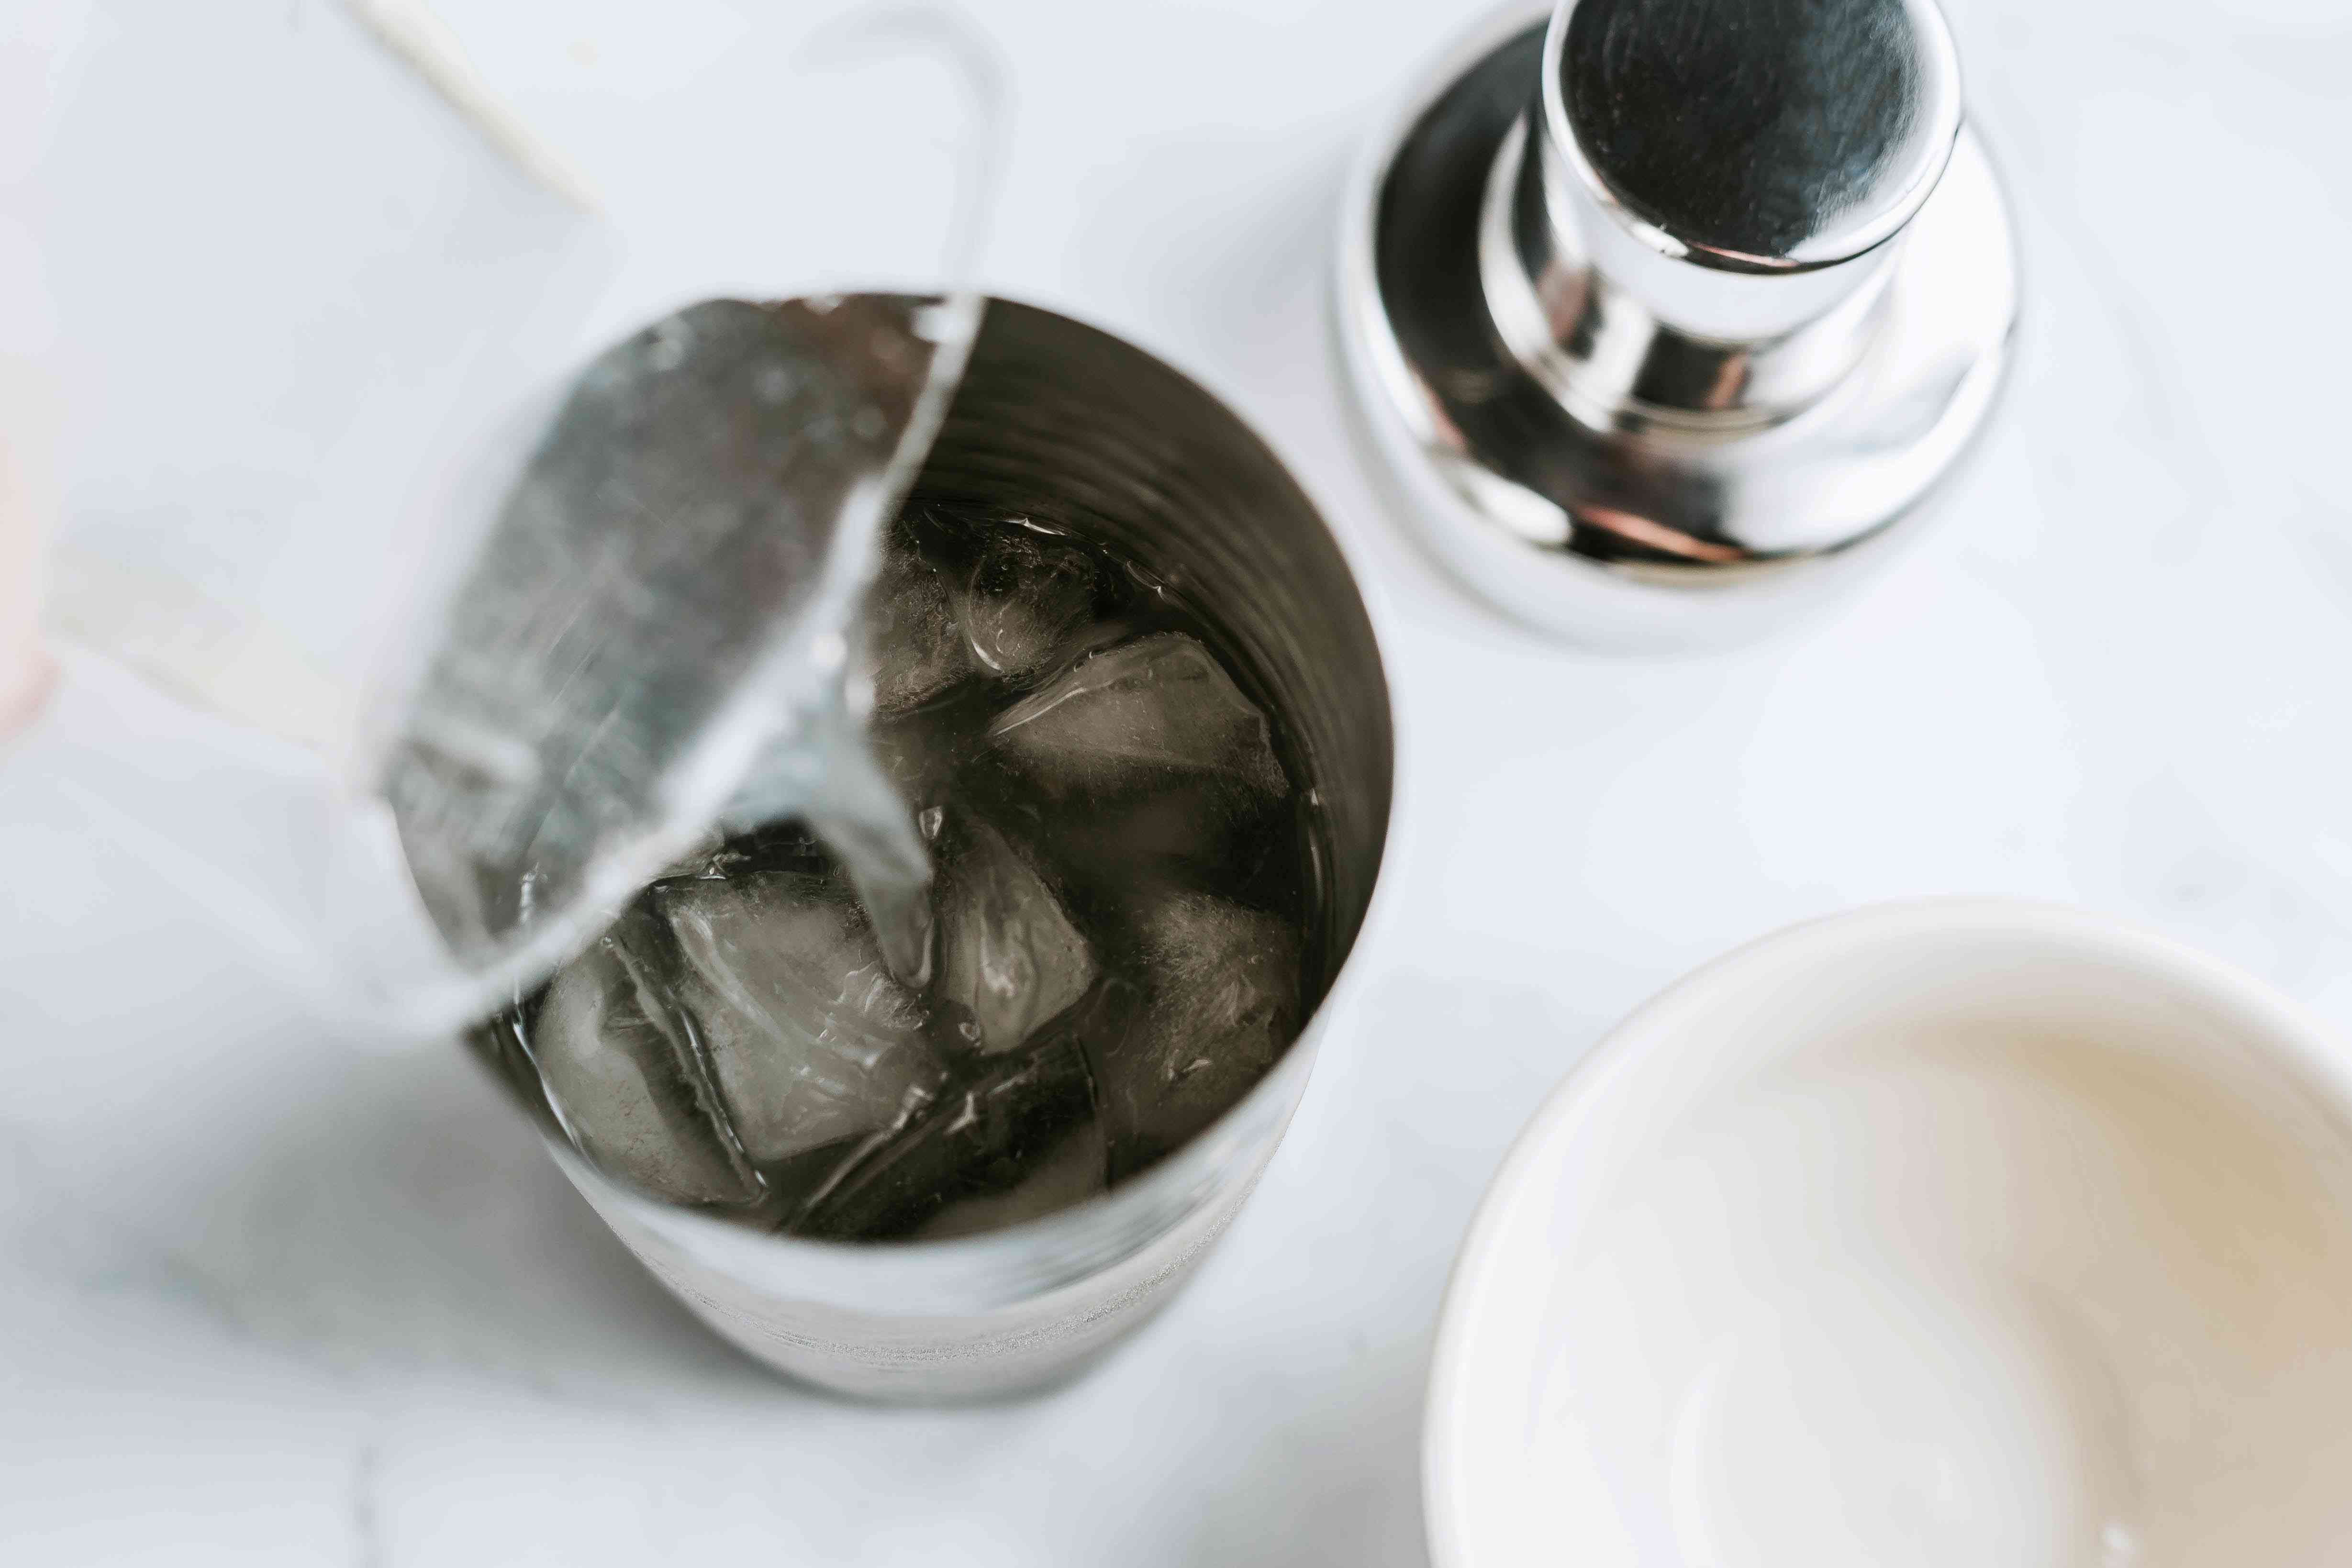 Cocktail shaker with ice cubes, vodka, lime juice, and triple sec